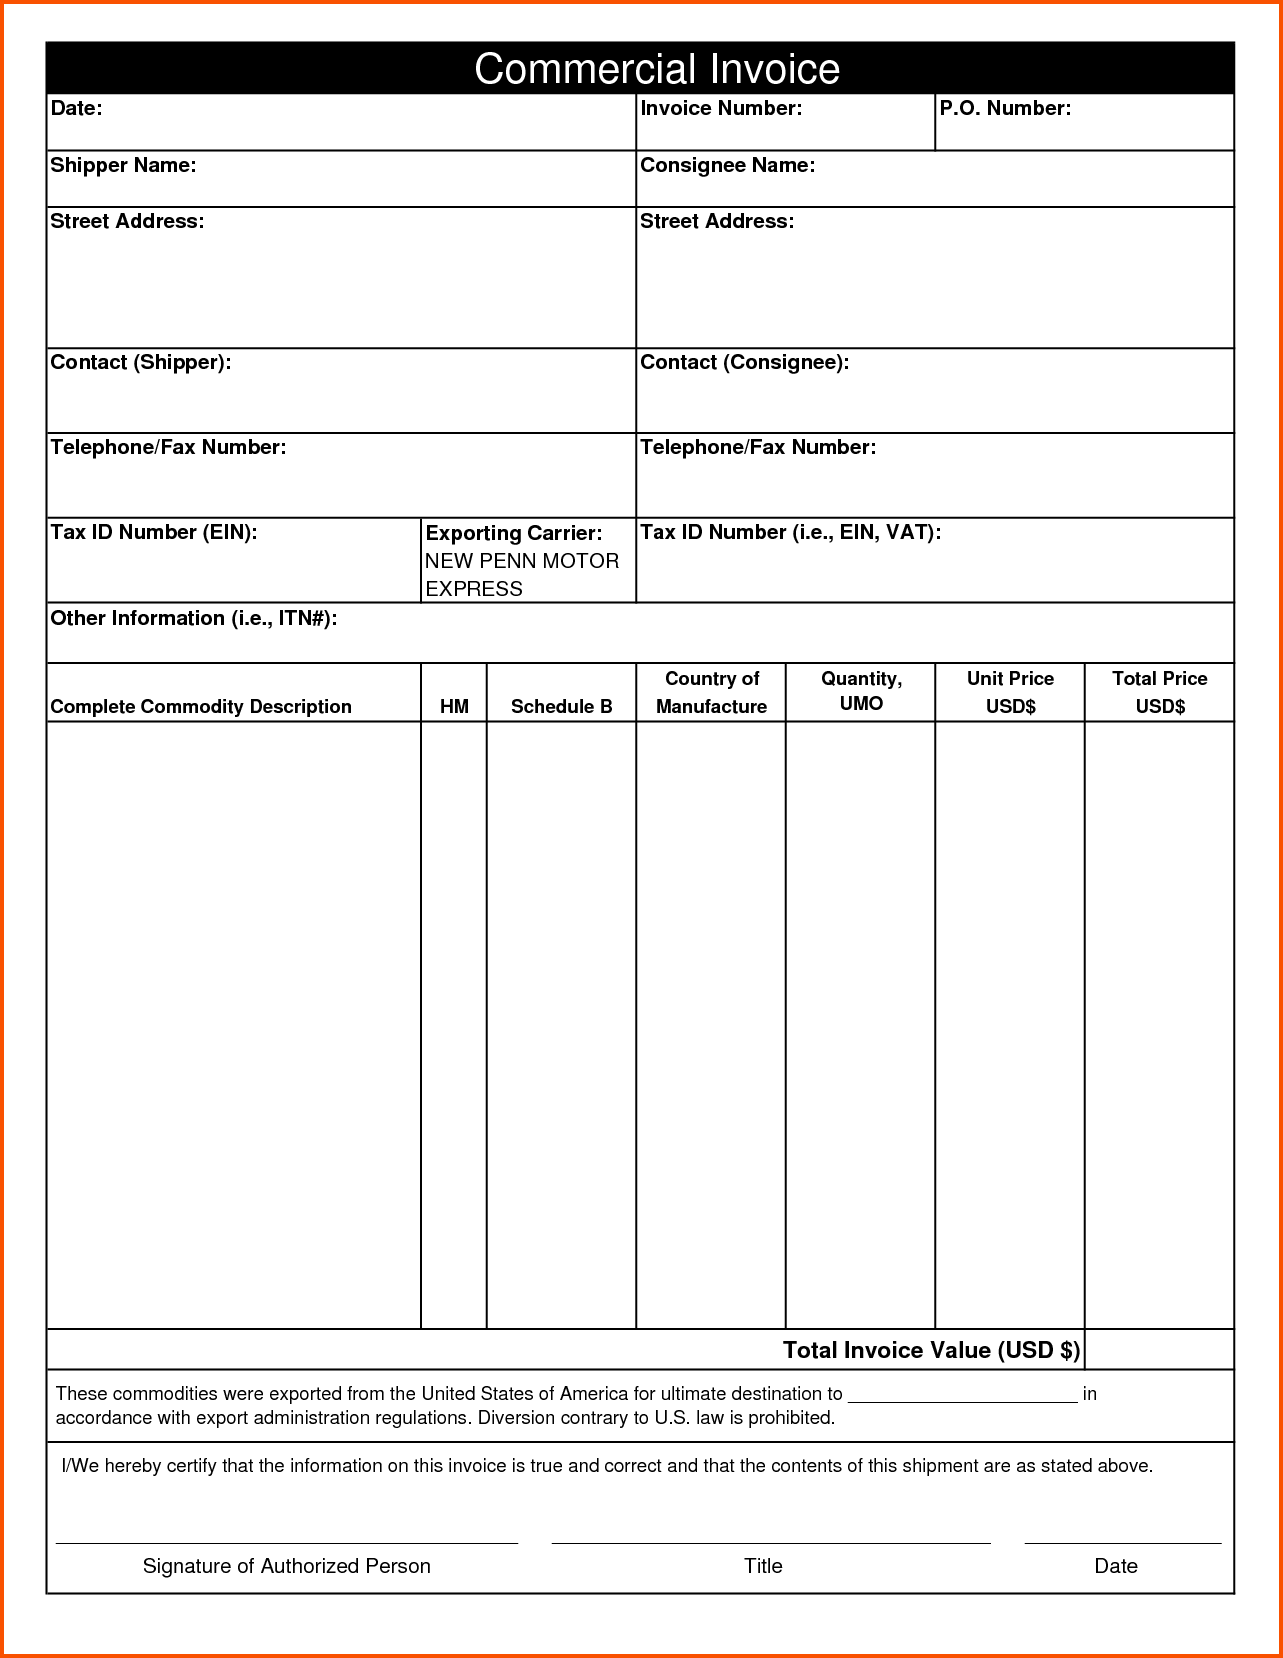 Usps Commercial Invoice - Commercial invoice template dhl online store credit cards guaranteed approval